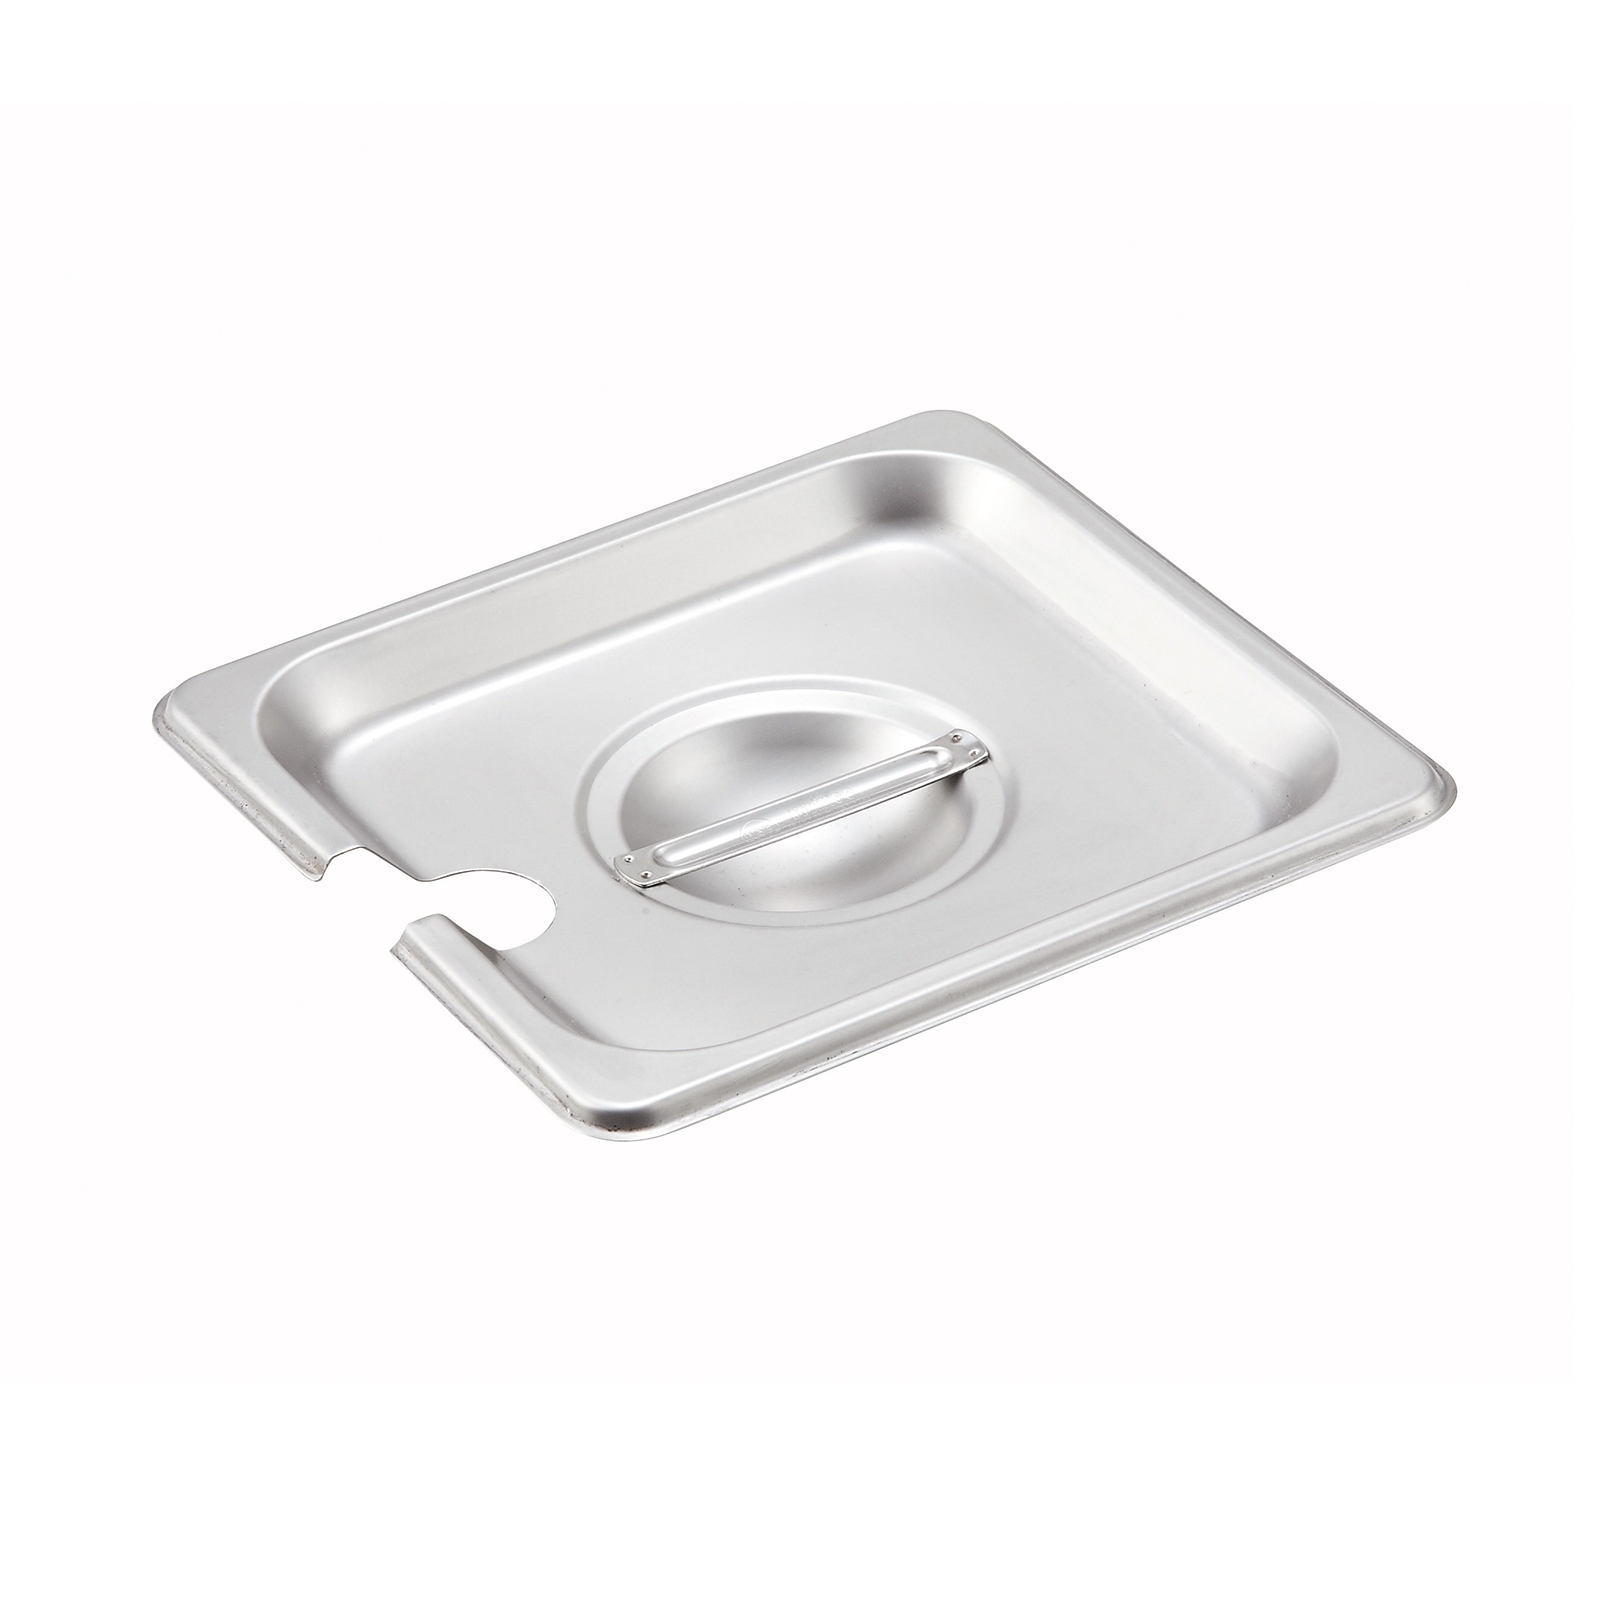 Winco SPCS steam table pan cover, stainless steel